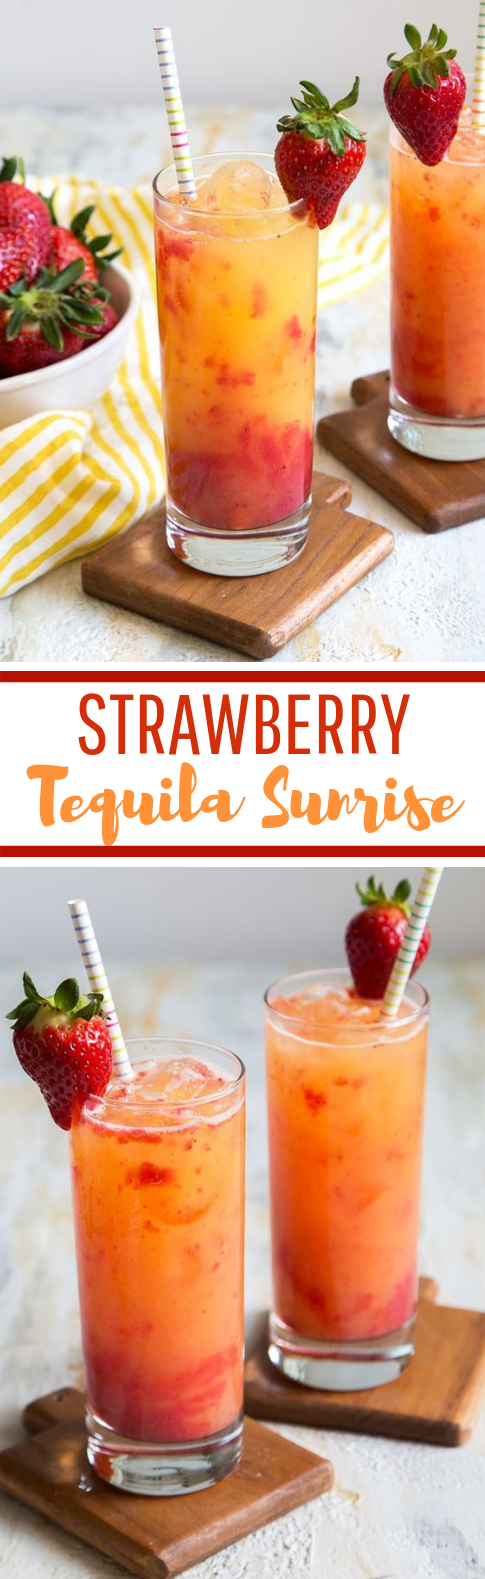 Strawberry Tequila Sunrise #cocktail #summerdrink